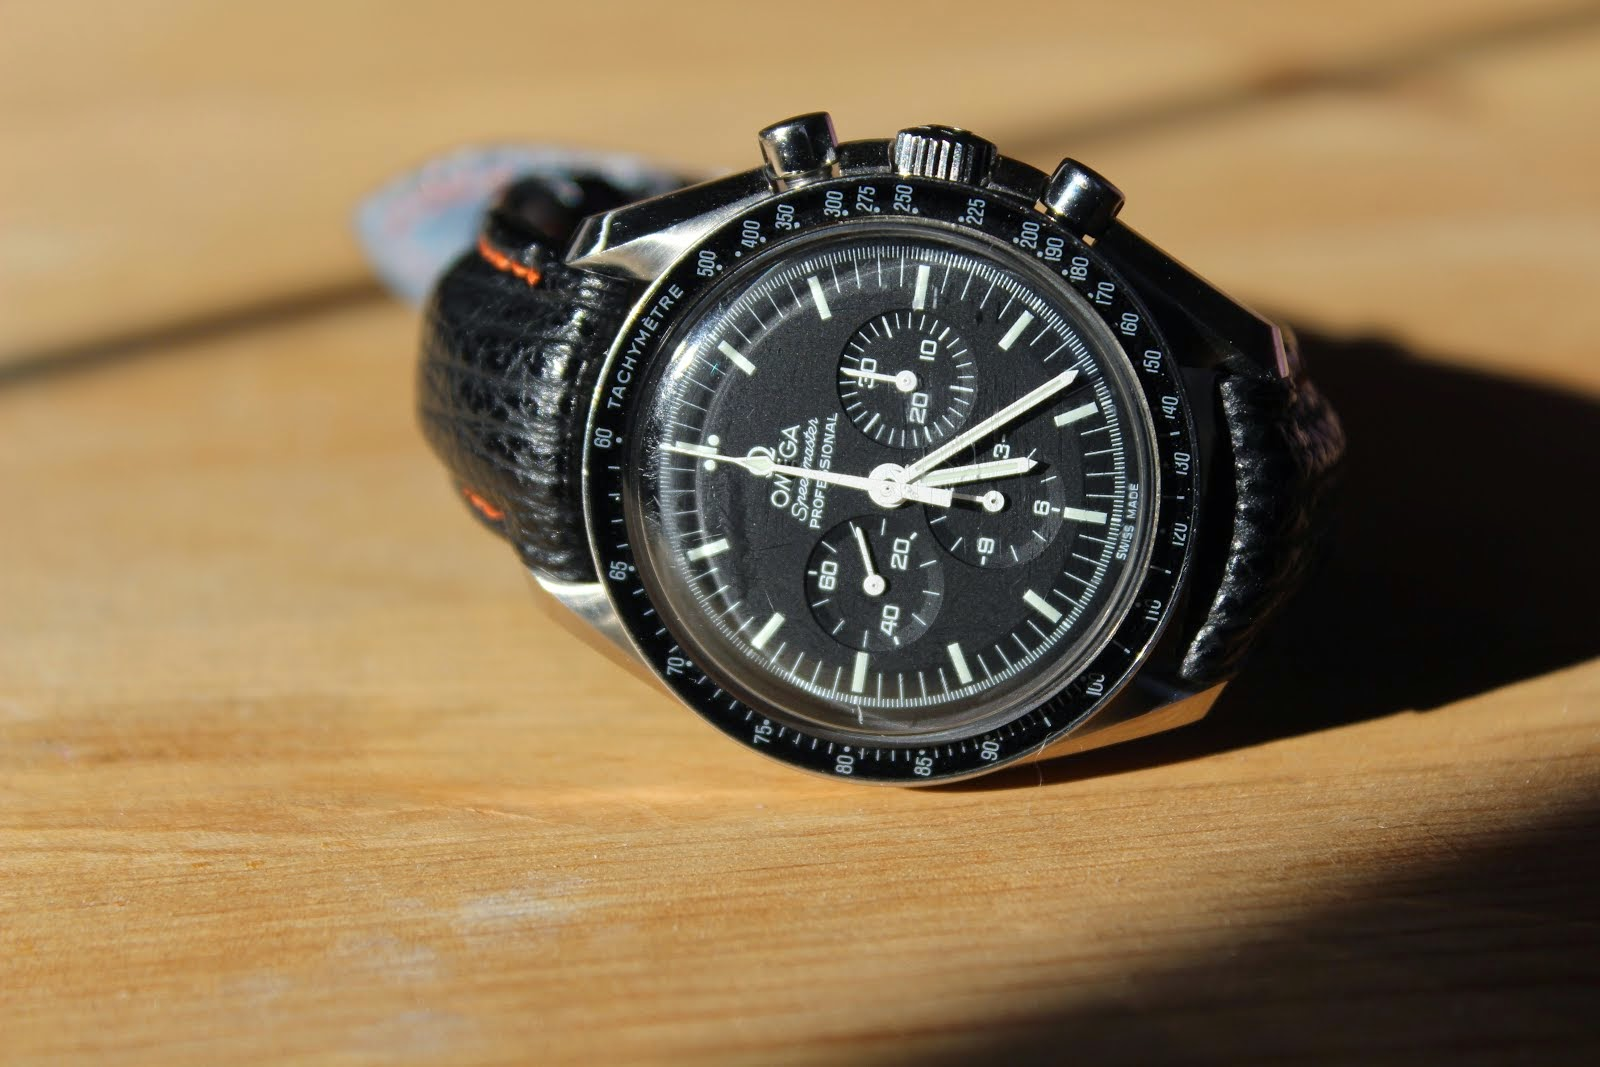 Dennis's great looking Speedmaster on bespoke Shark skin strap with TCLS fit